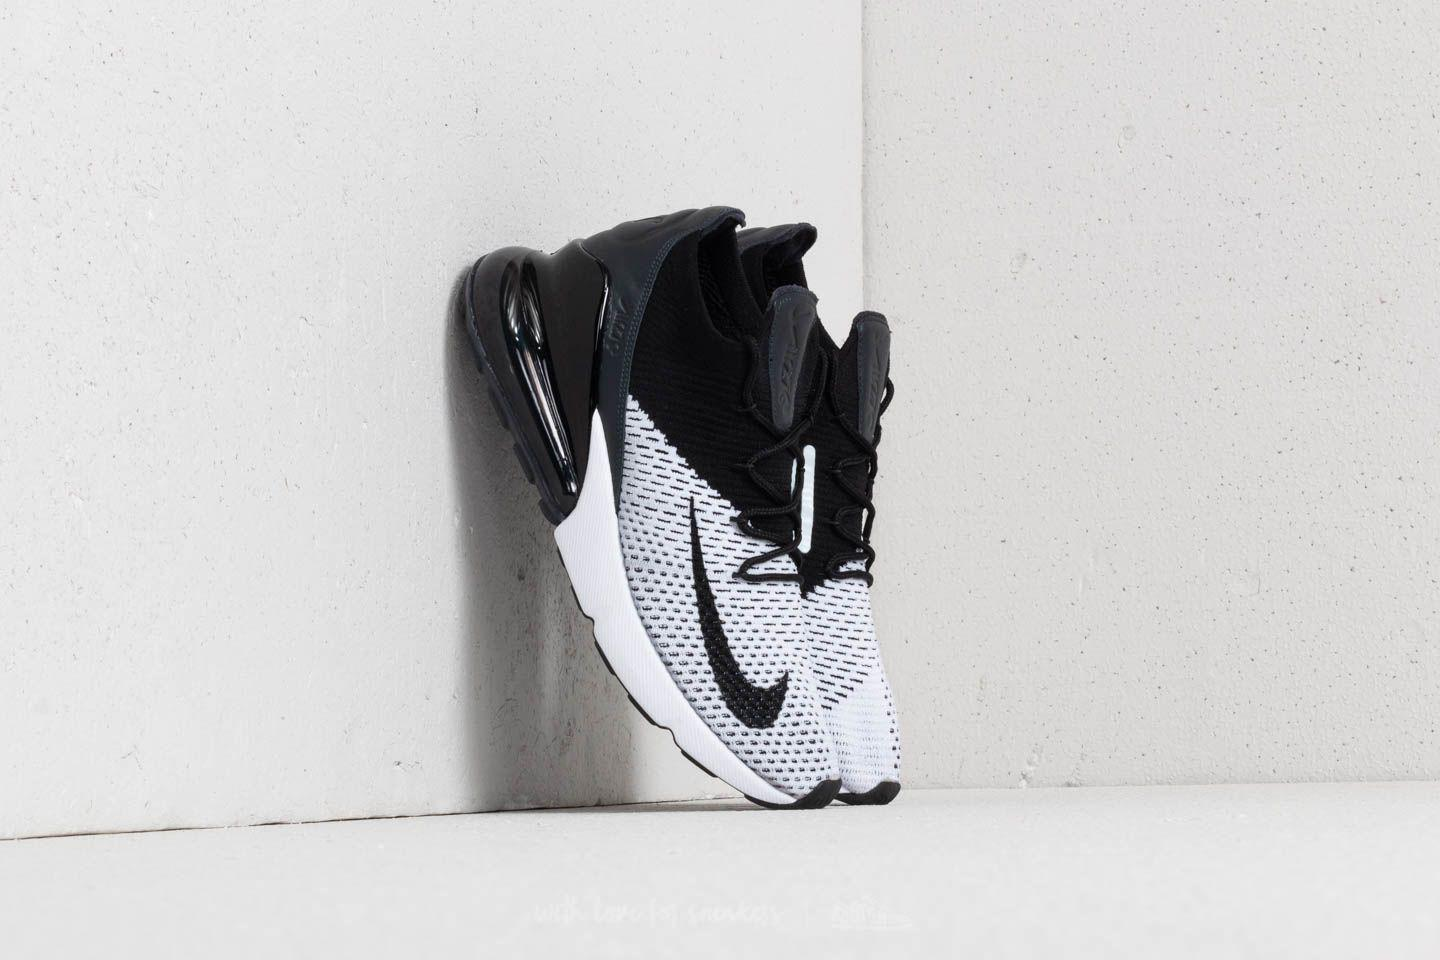 Lyst - Nike Air Max 270 Flyknit White  Black-anthracite in Black for Men 4e6ad7a17